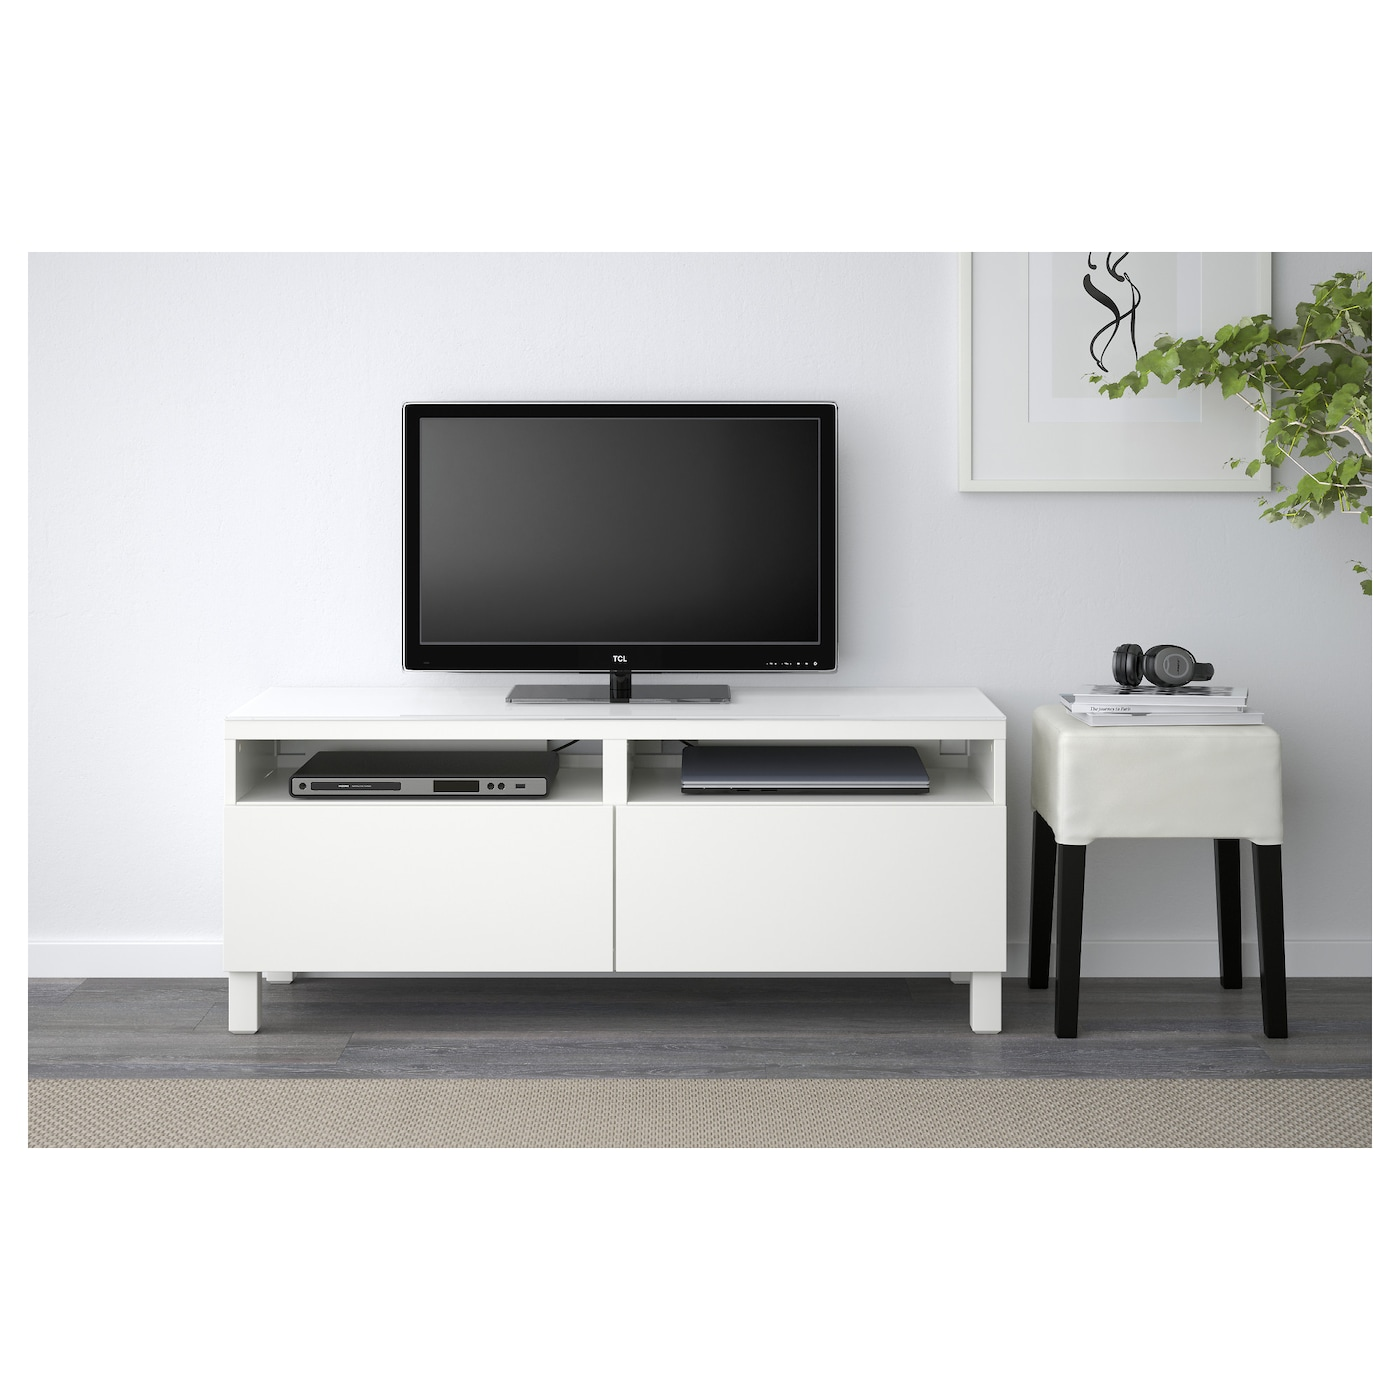 Best Tv Bench With Drawers Lappviken White 120x40x48 Cm Ikea